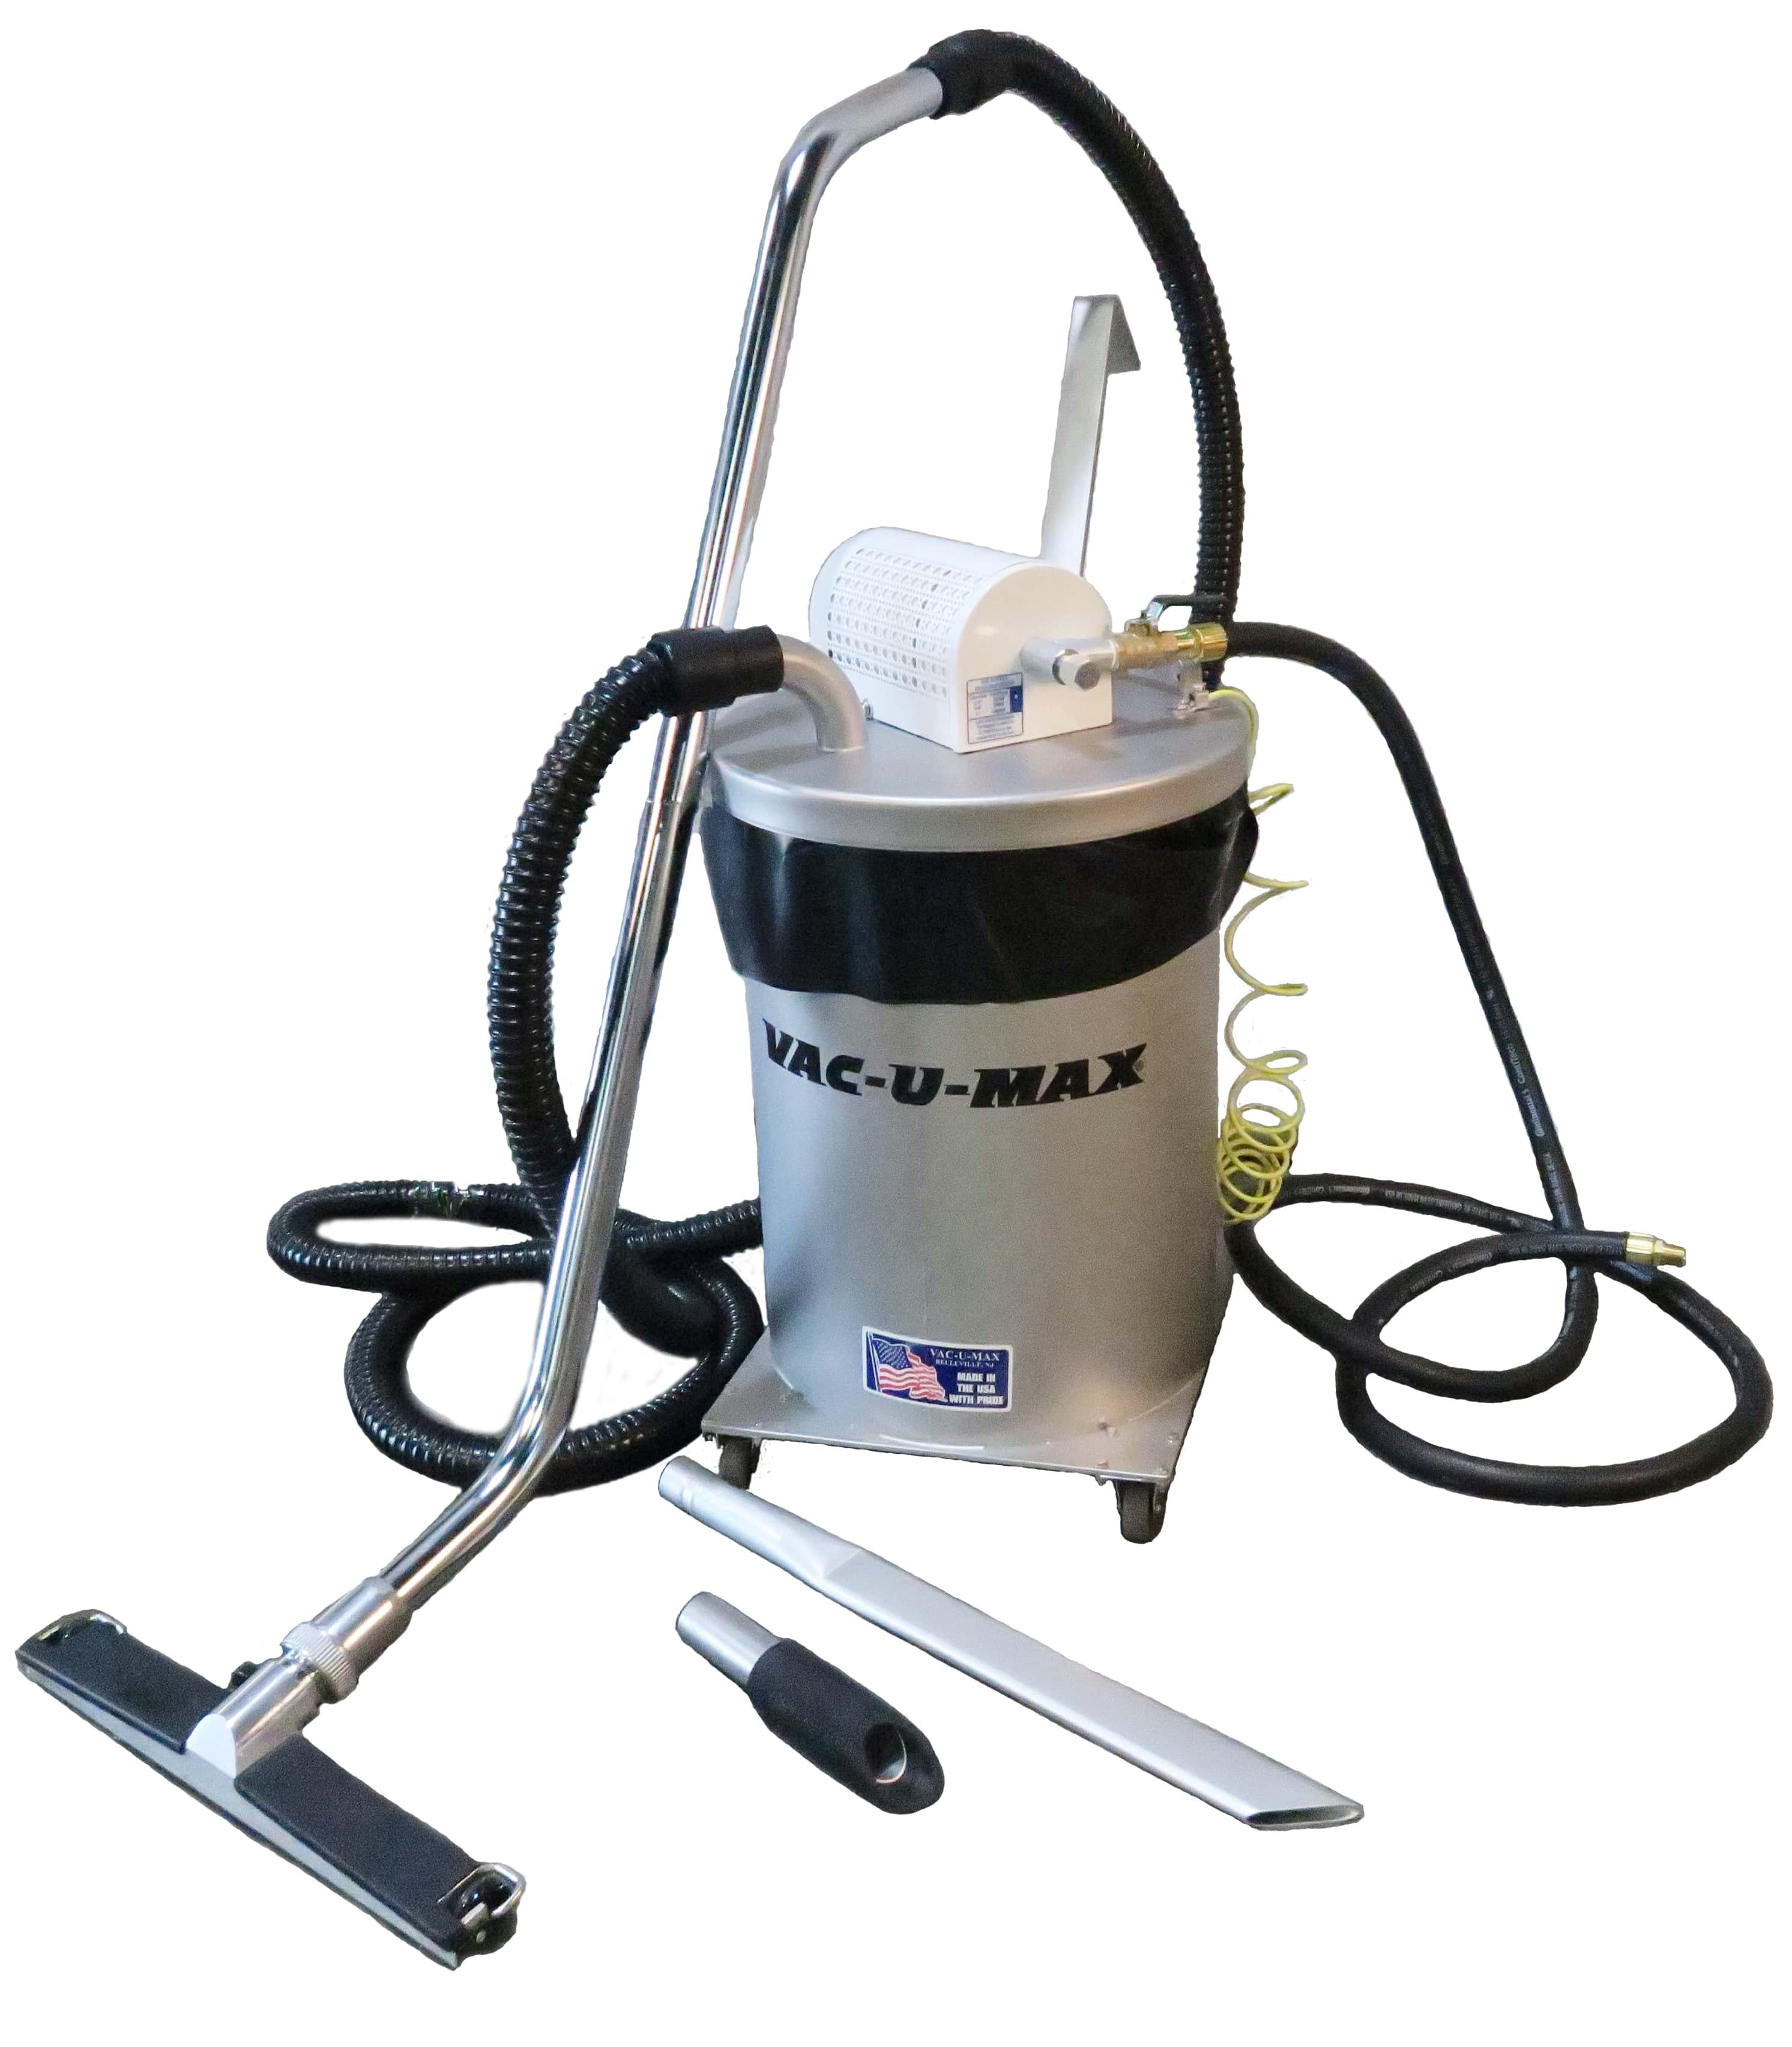 VAC-U-MAX Introduces the MDL15 Combustible Dust Air-Vac